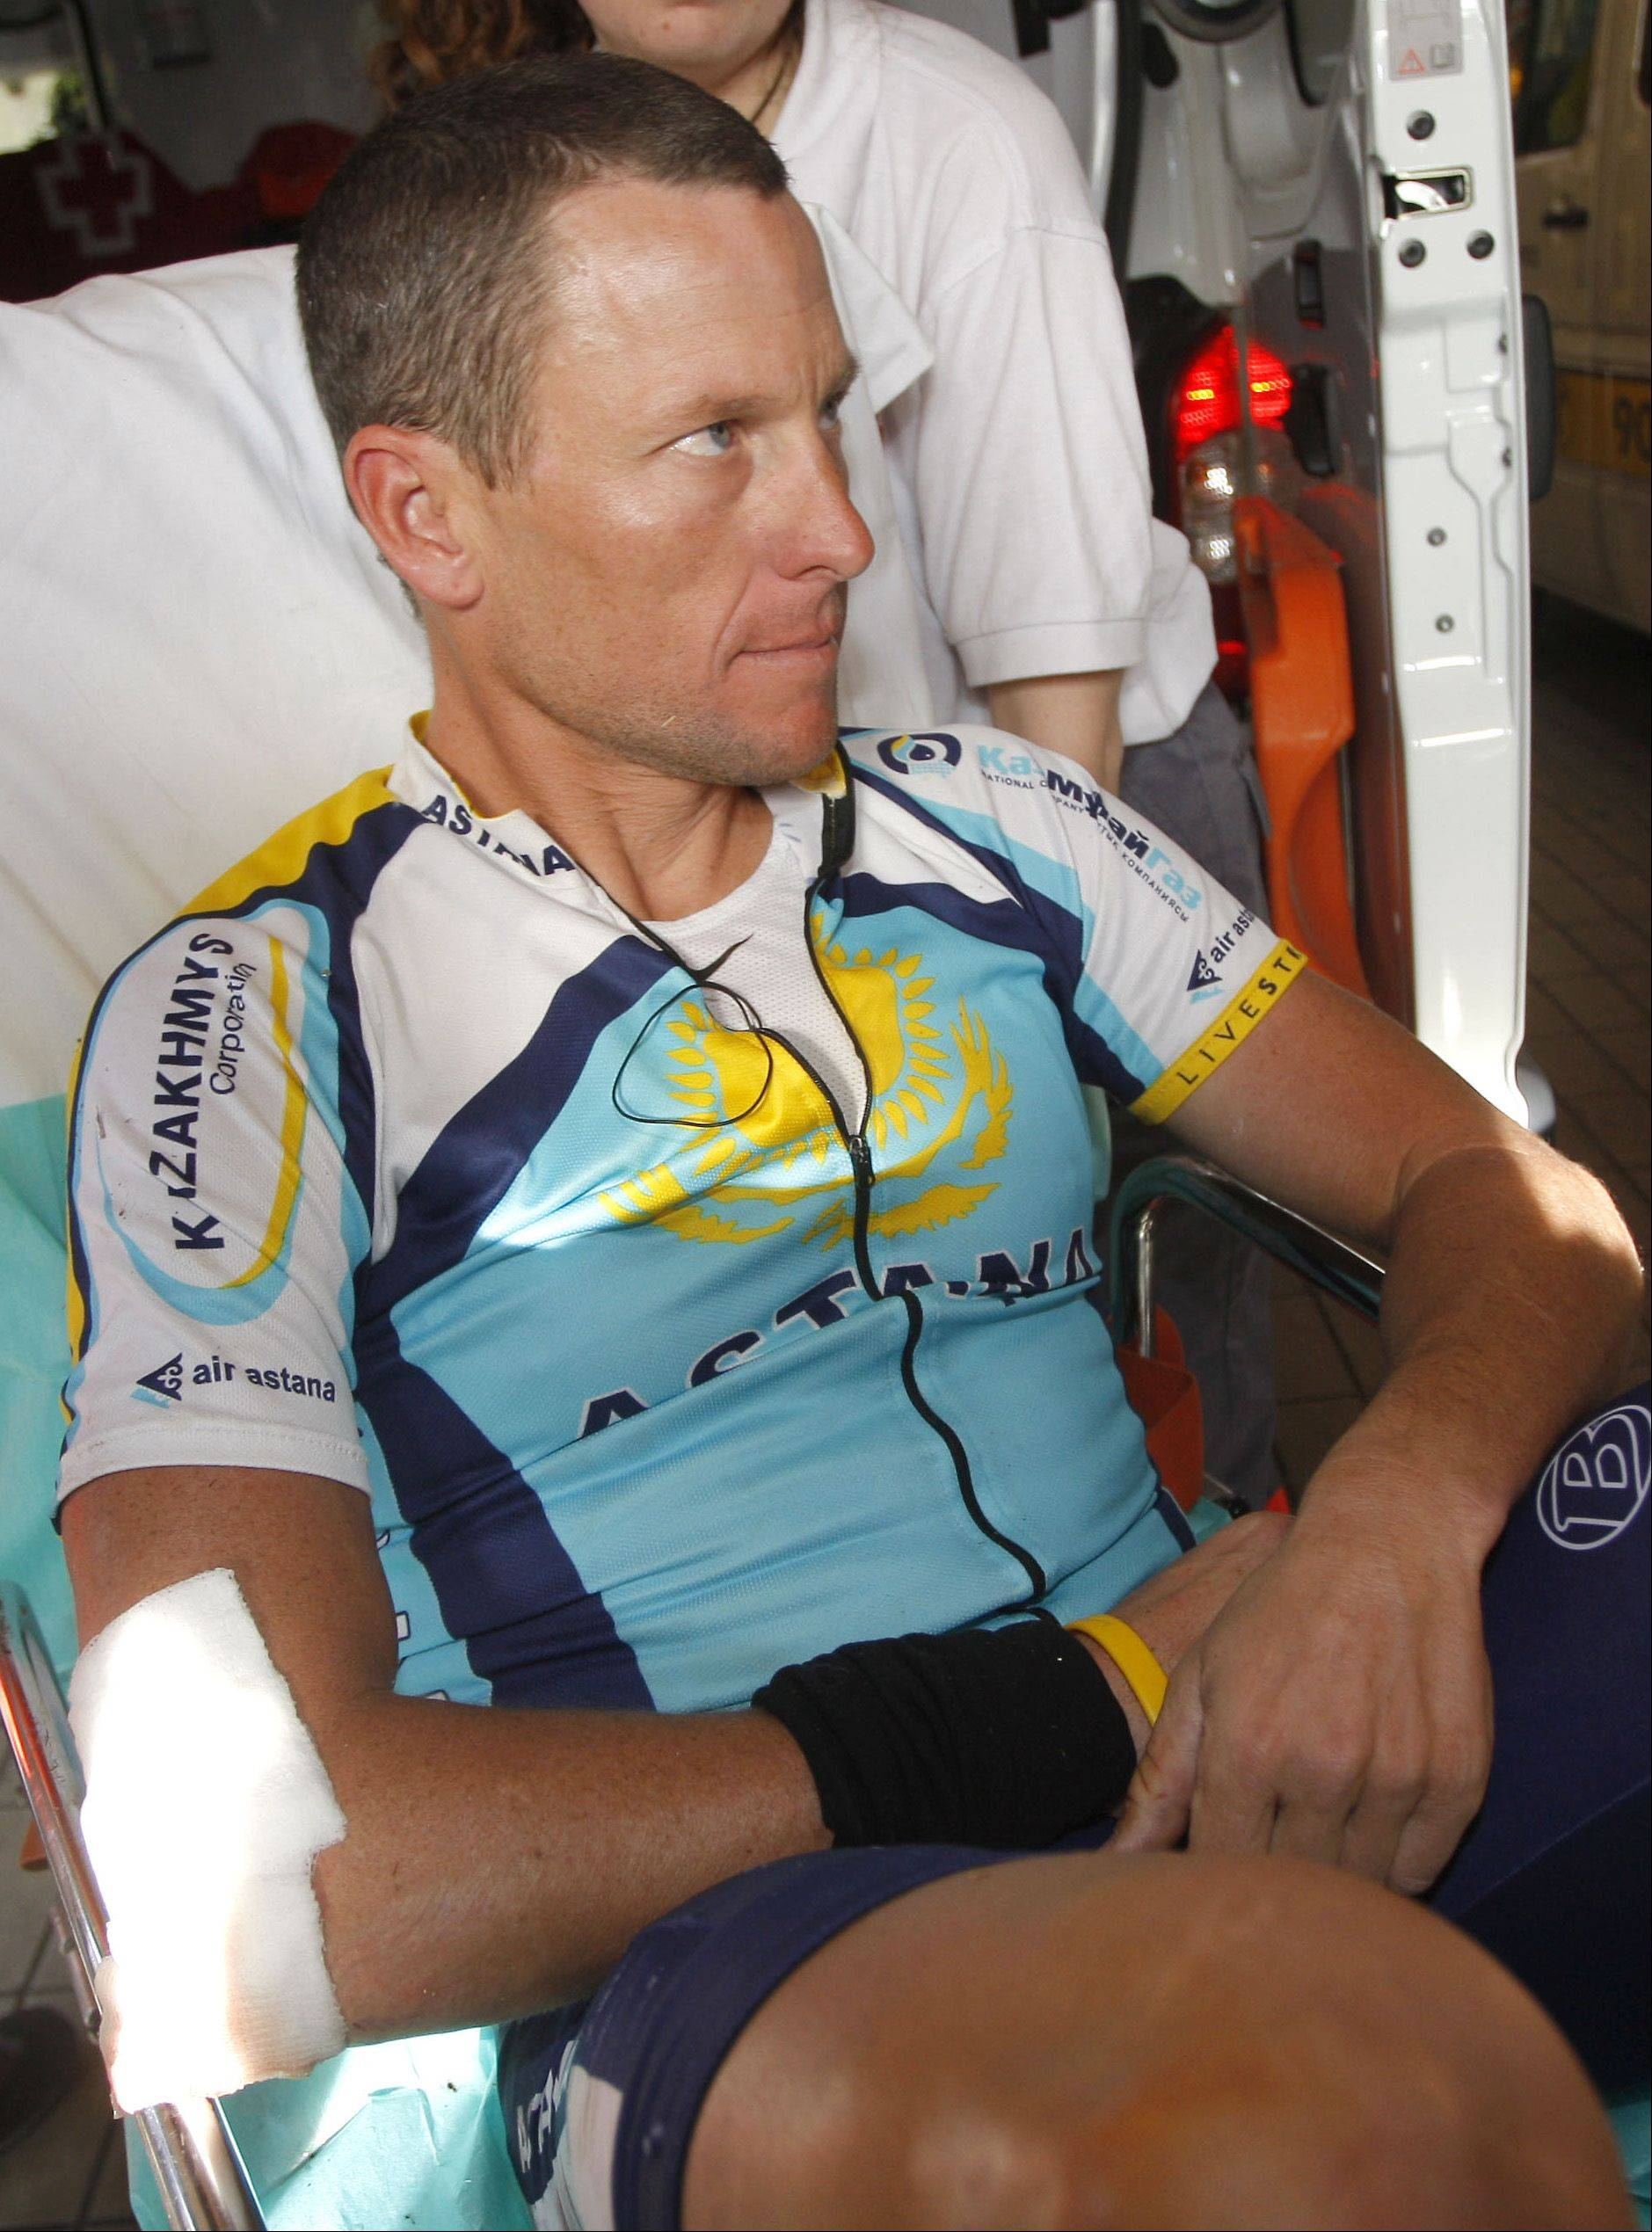 Lance Armstrong of the U.S. is seen in an ambulance as he arrives at Hospital Clinico in Valladolid, Spain, Monday March 23, 2009. Armstrong fractured his collarbone Monday in a crash during the Vuelta of Castilla and Leon race, disrupting the seven-time Tour de France champion's comeback. Armstrong said he would fly to the United States and meet with medical experts to decide whether he needs surgery, leaving in question his participation in the Tour de France in July.